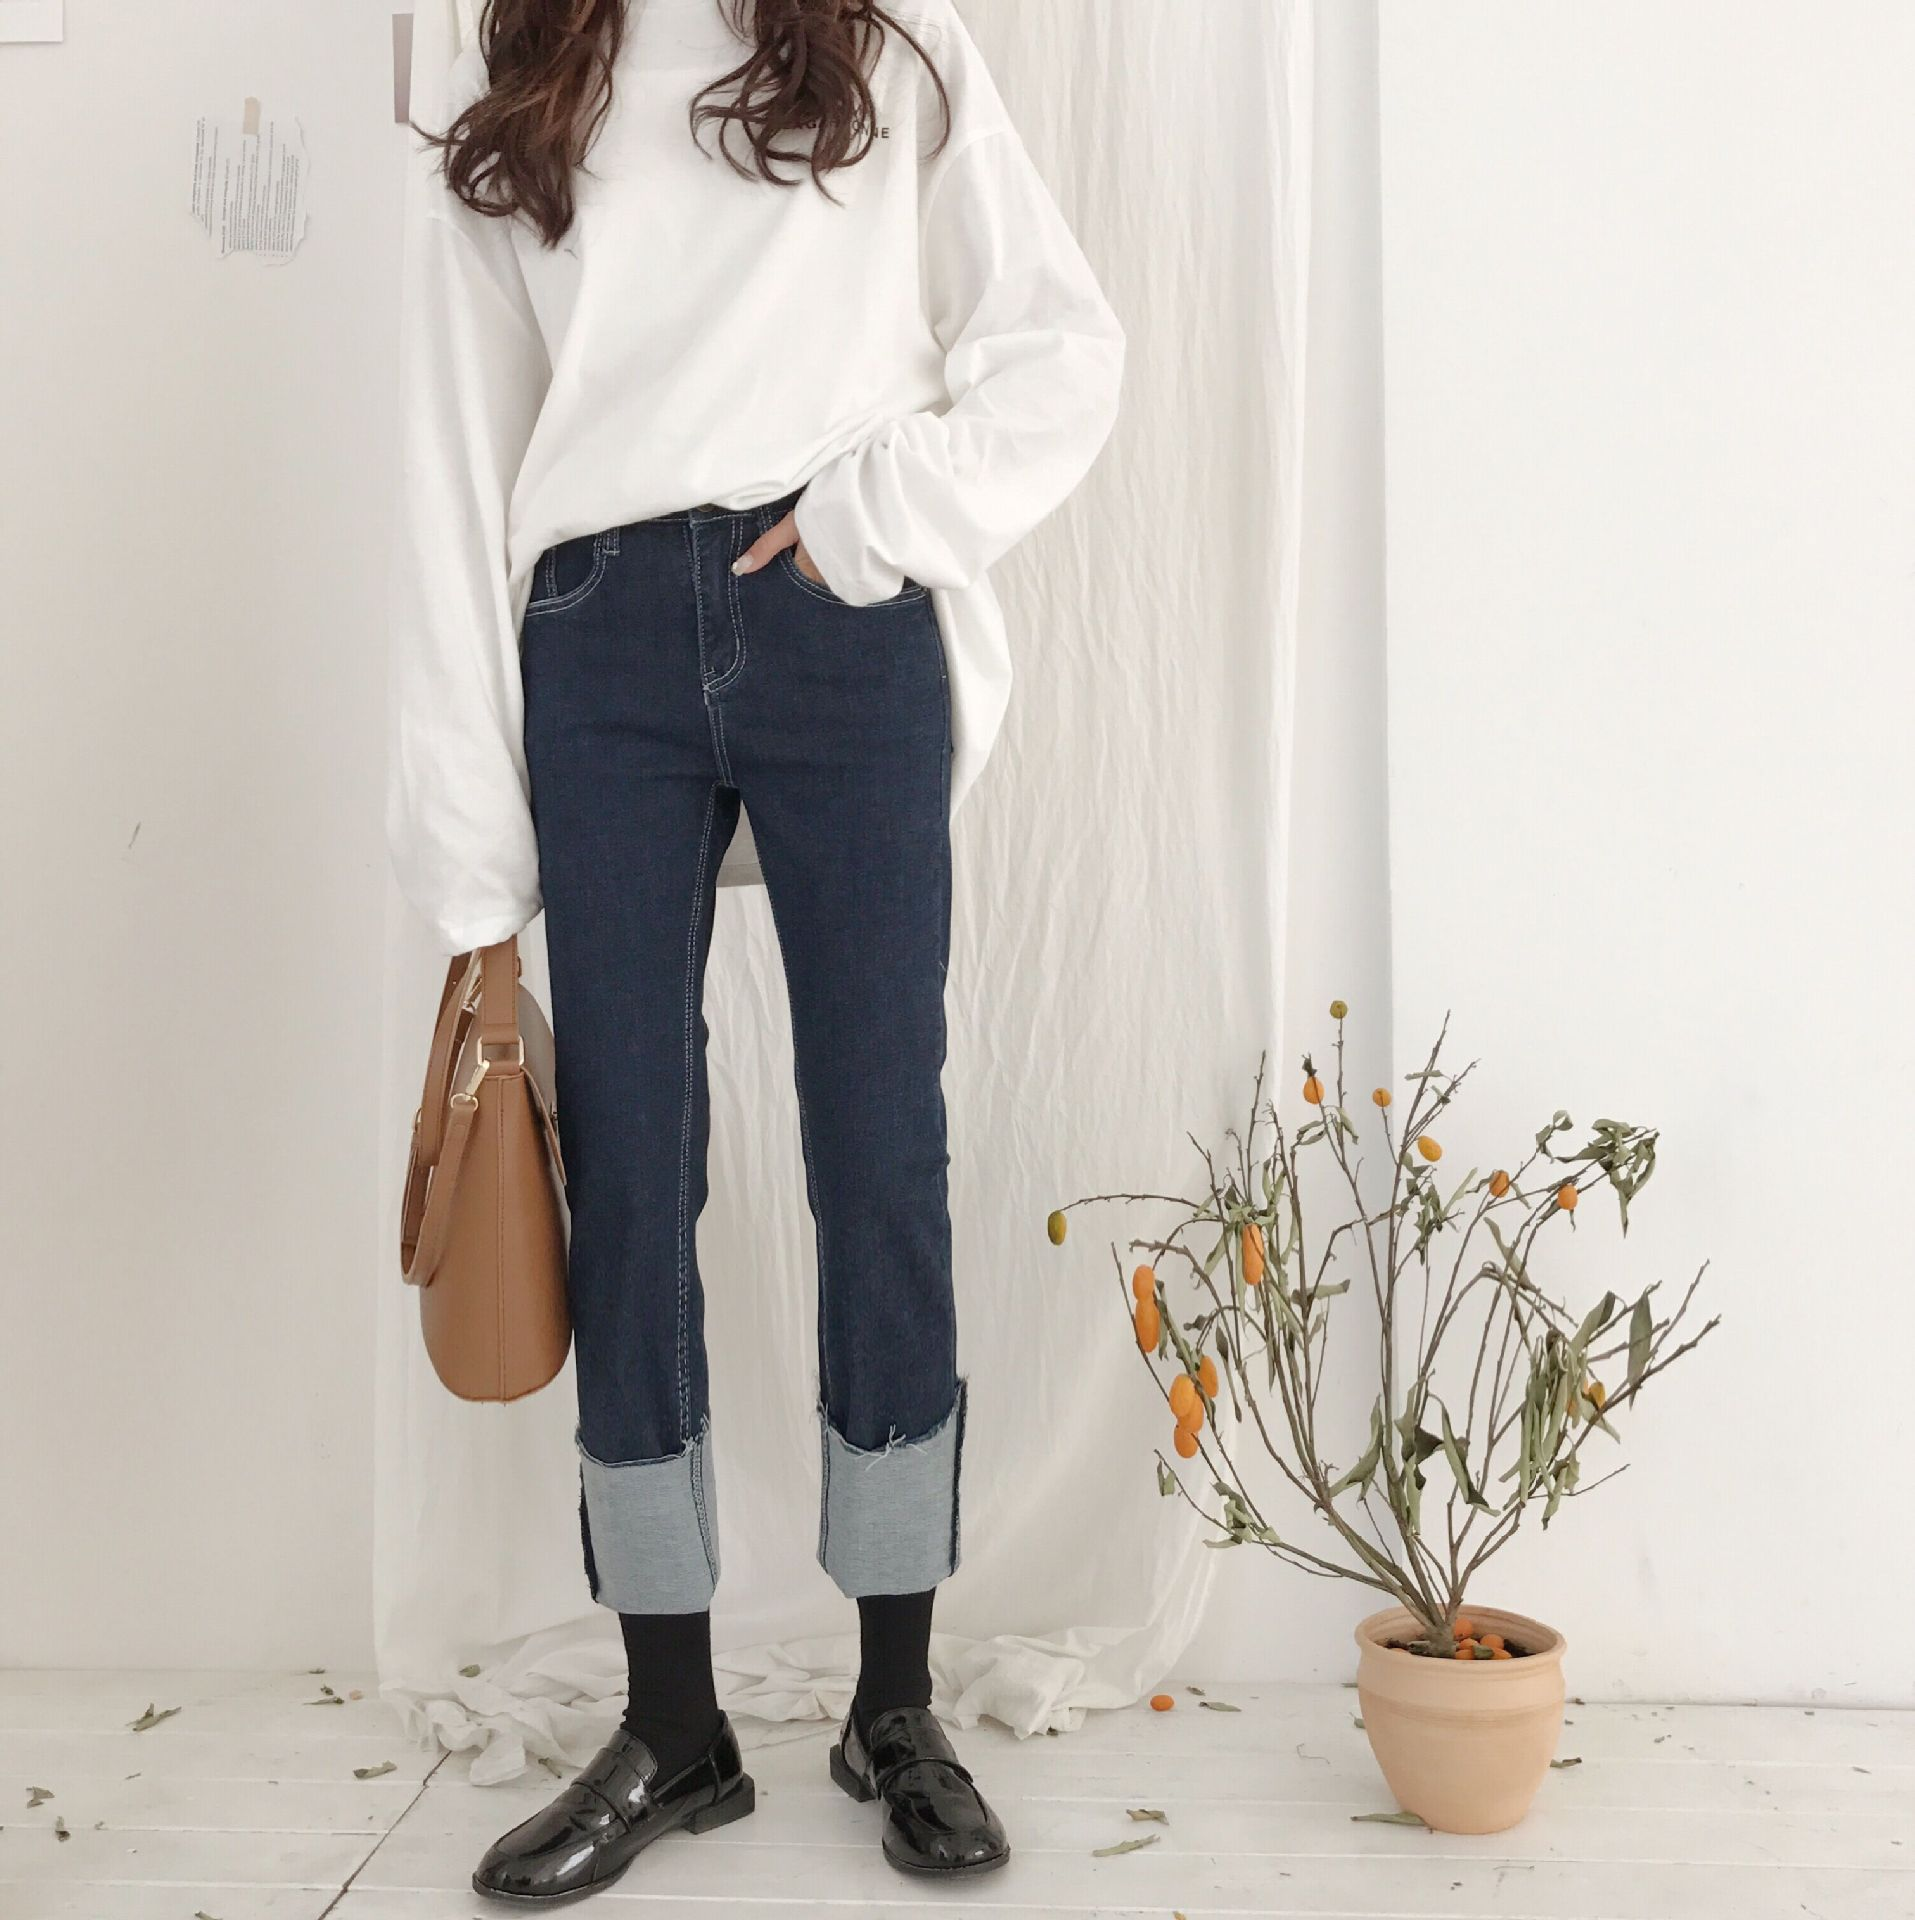 Vintage Korean  Womens Jeans Denim Washed Straight High Waist Jeans Pants Loose Trousers